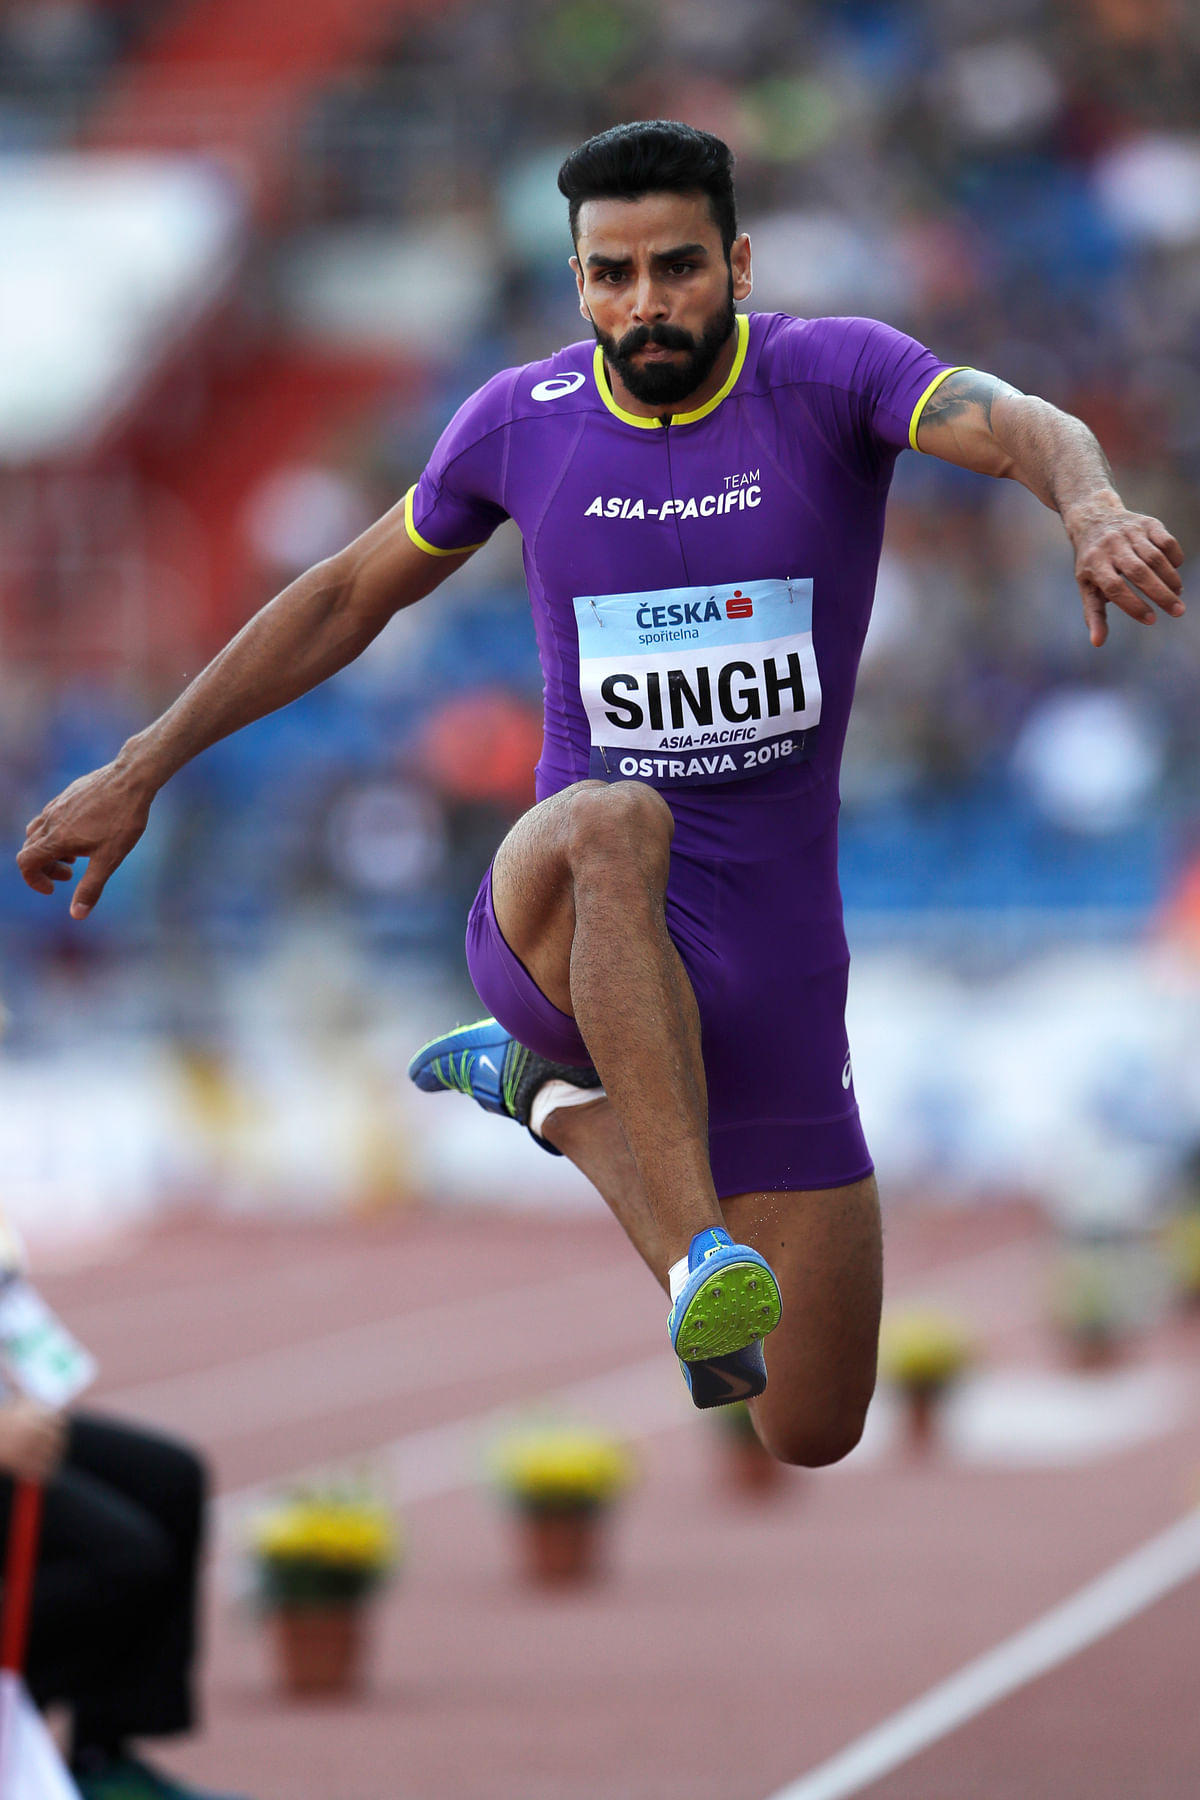 Arpinder, who had won a gold in the Asian Games in Jakarta, cleared 16.59m in the first of his three jumps to be in the four-man semi-finals.